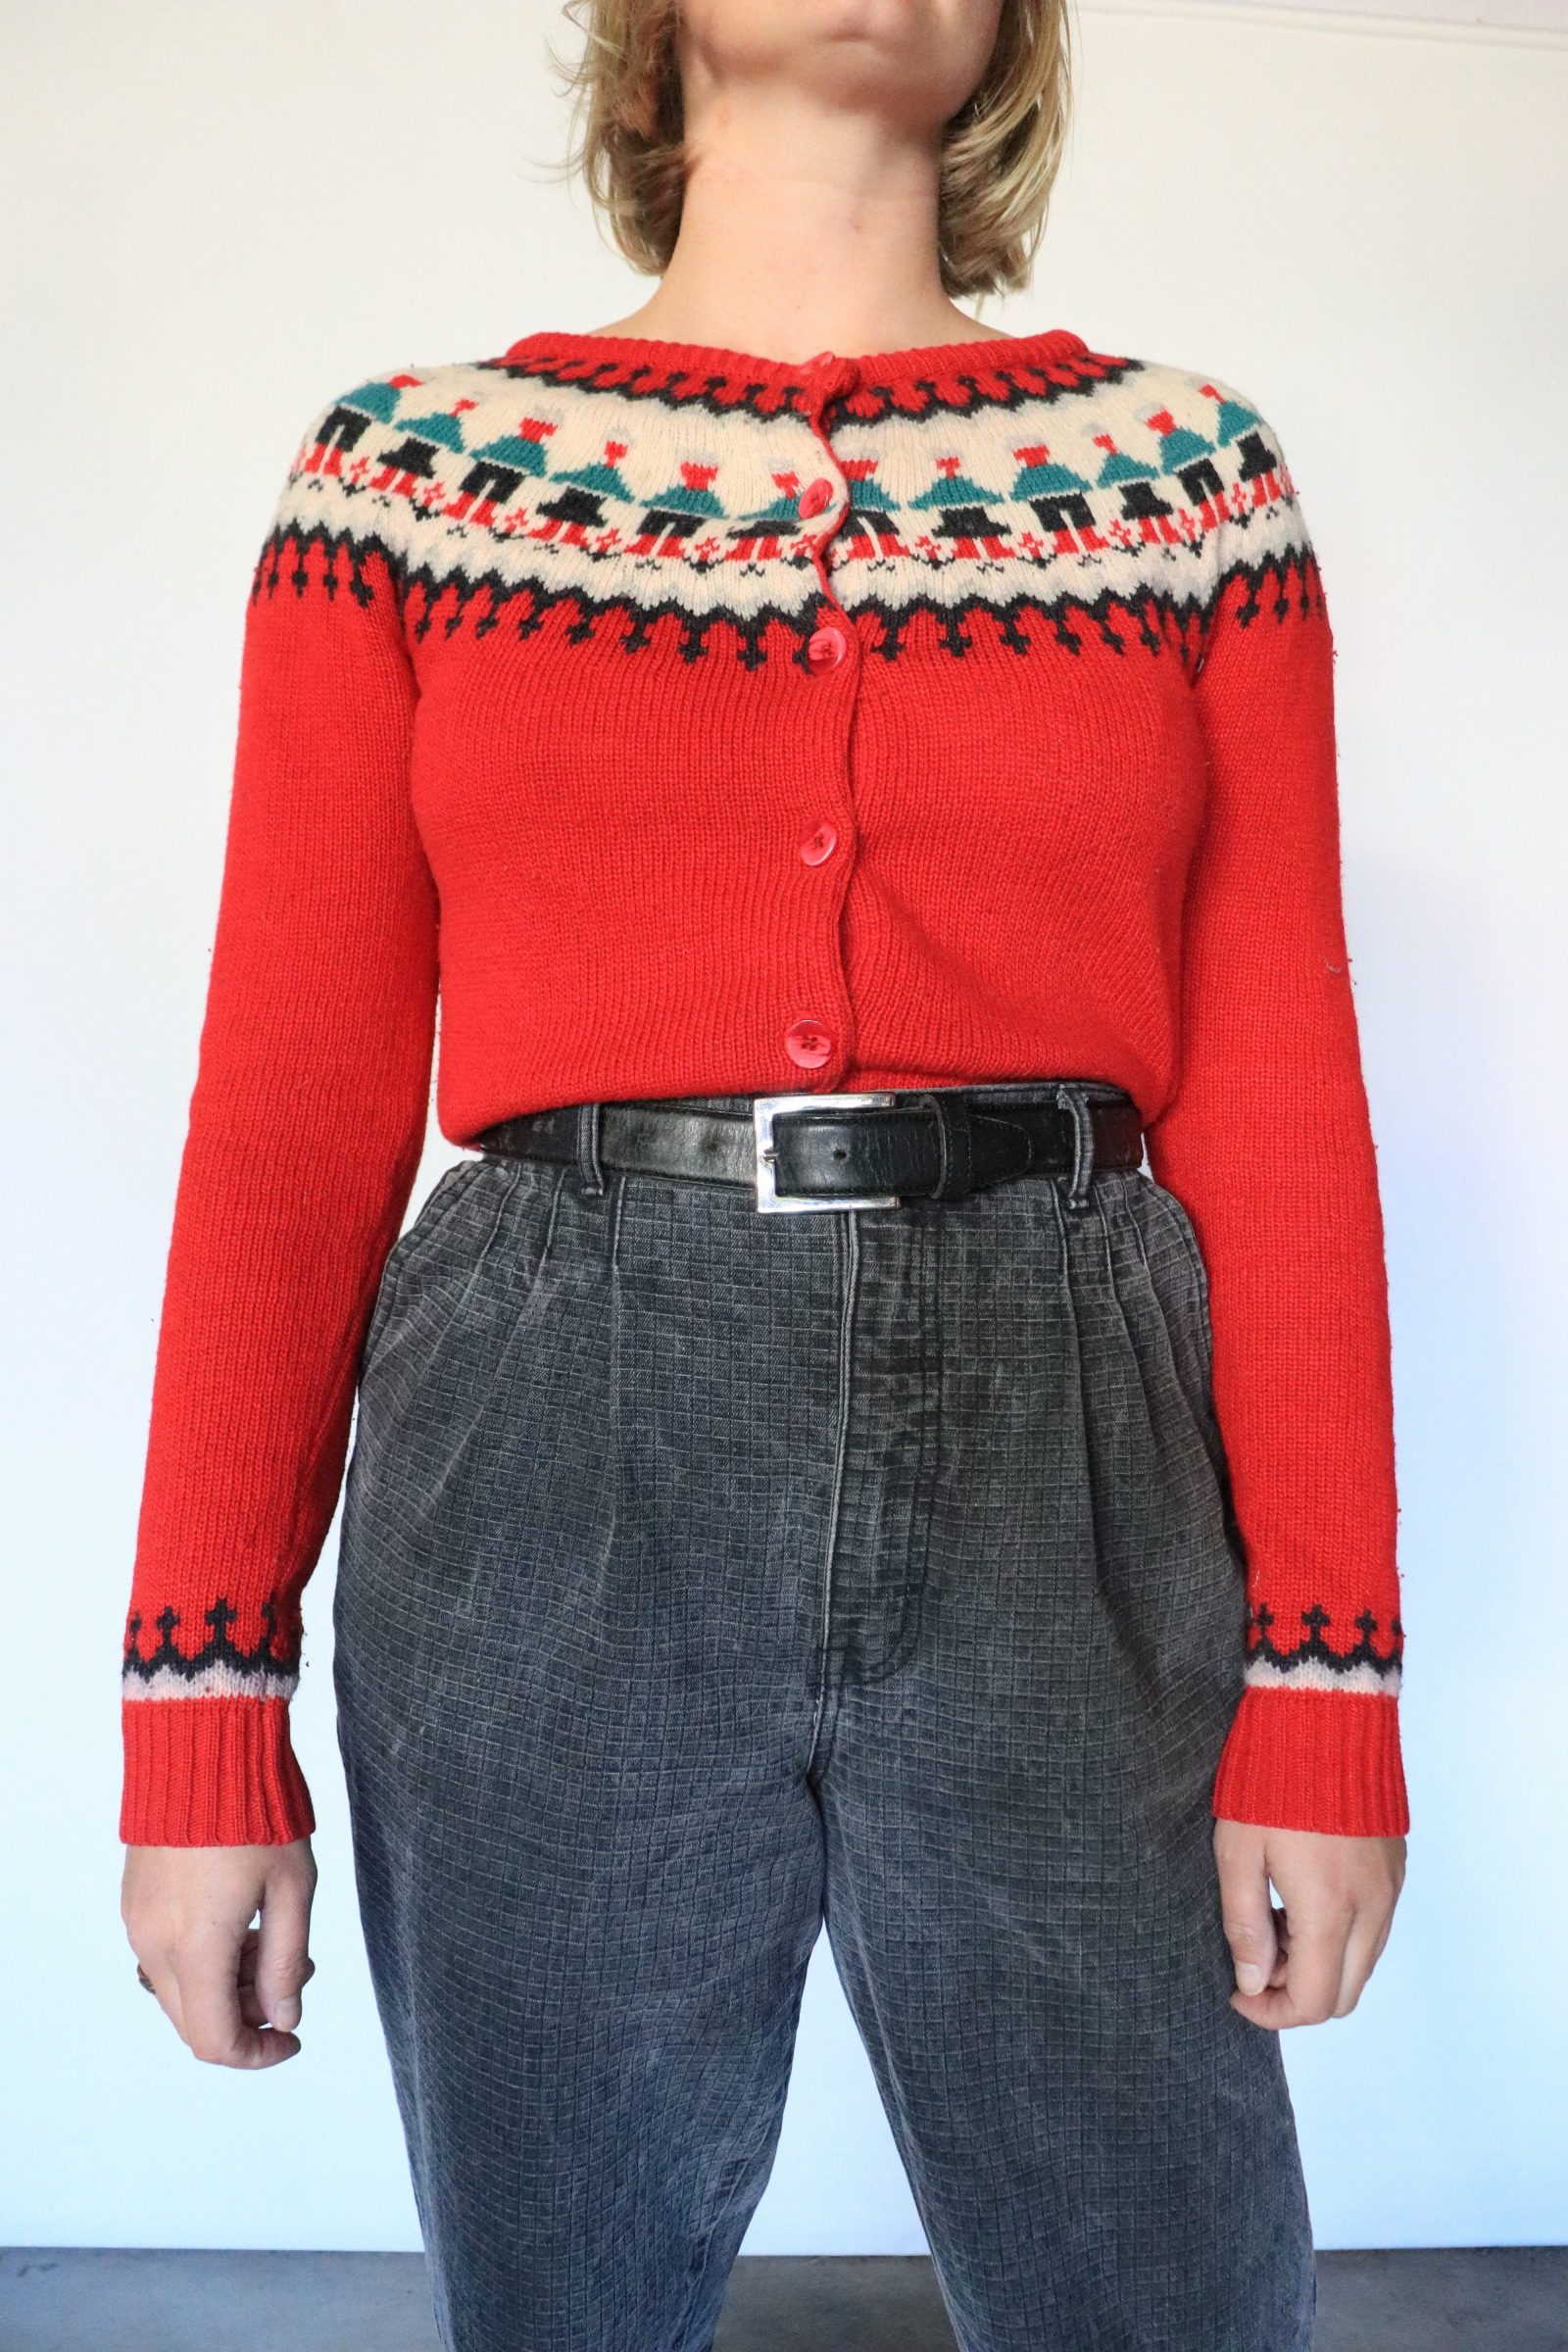 70s/80s Nordic style knitted cardigan